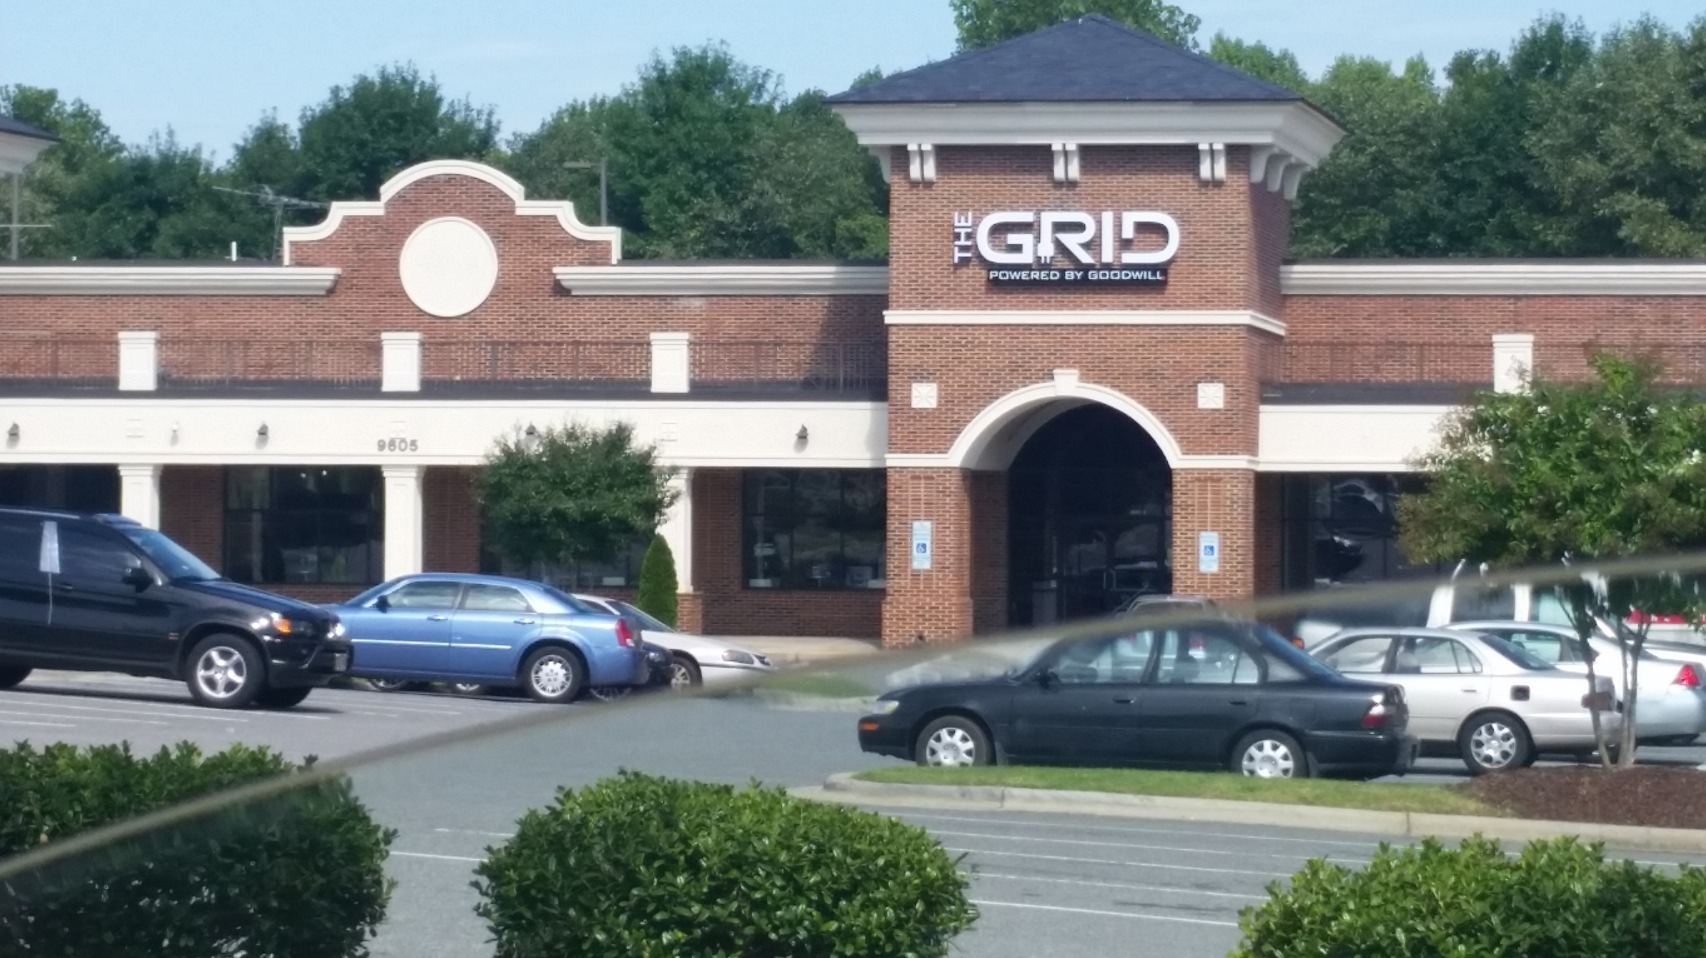 the grid concept store opened by goodwill in charlotte north